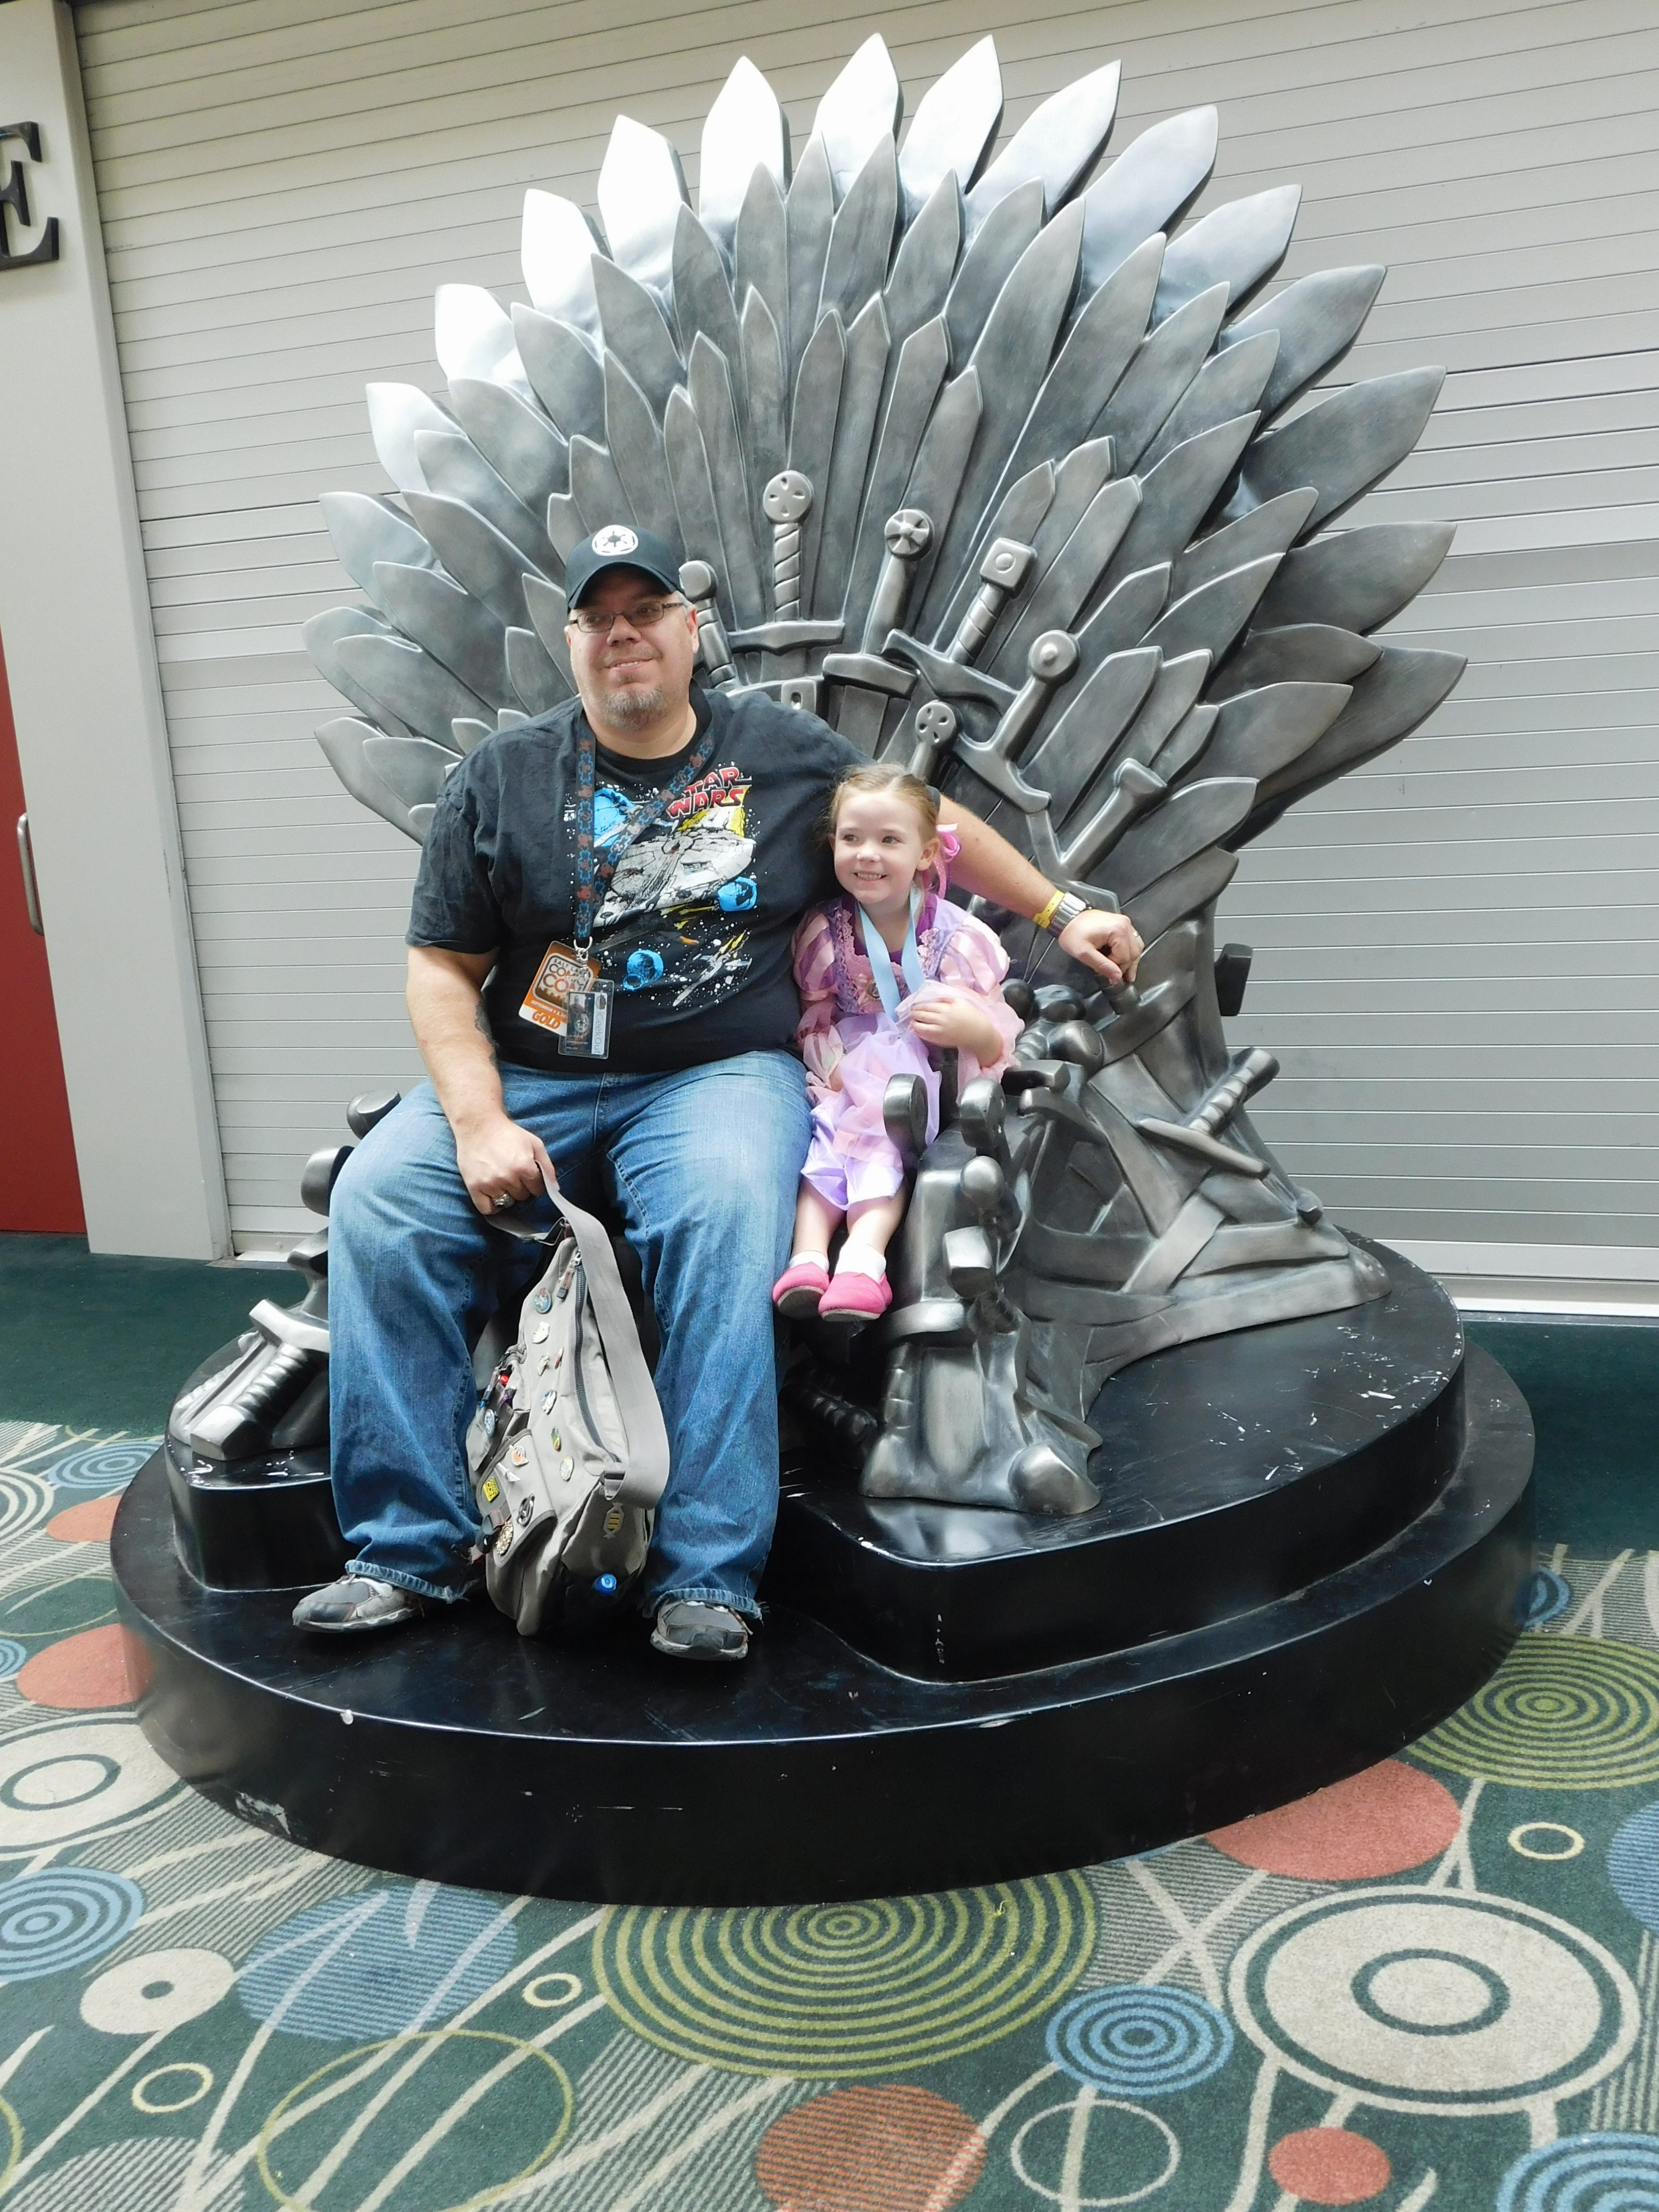 SLCCd3.004 - iGeekOut has finally found his throne, and the Princess for it.